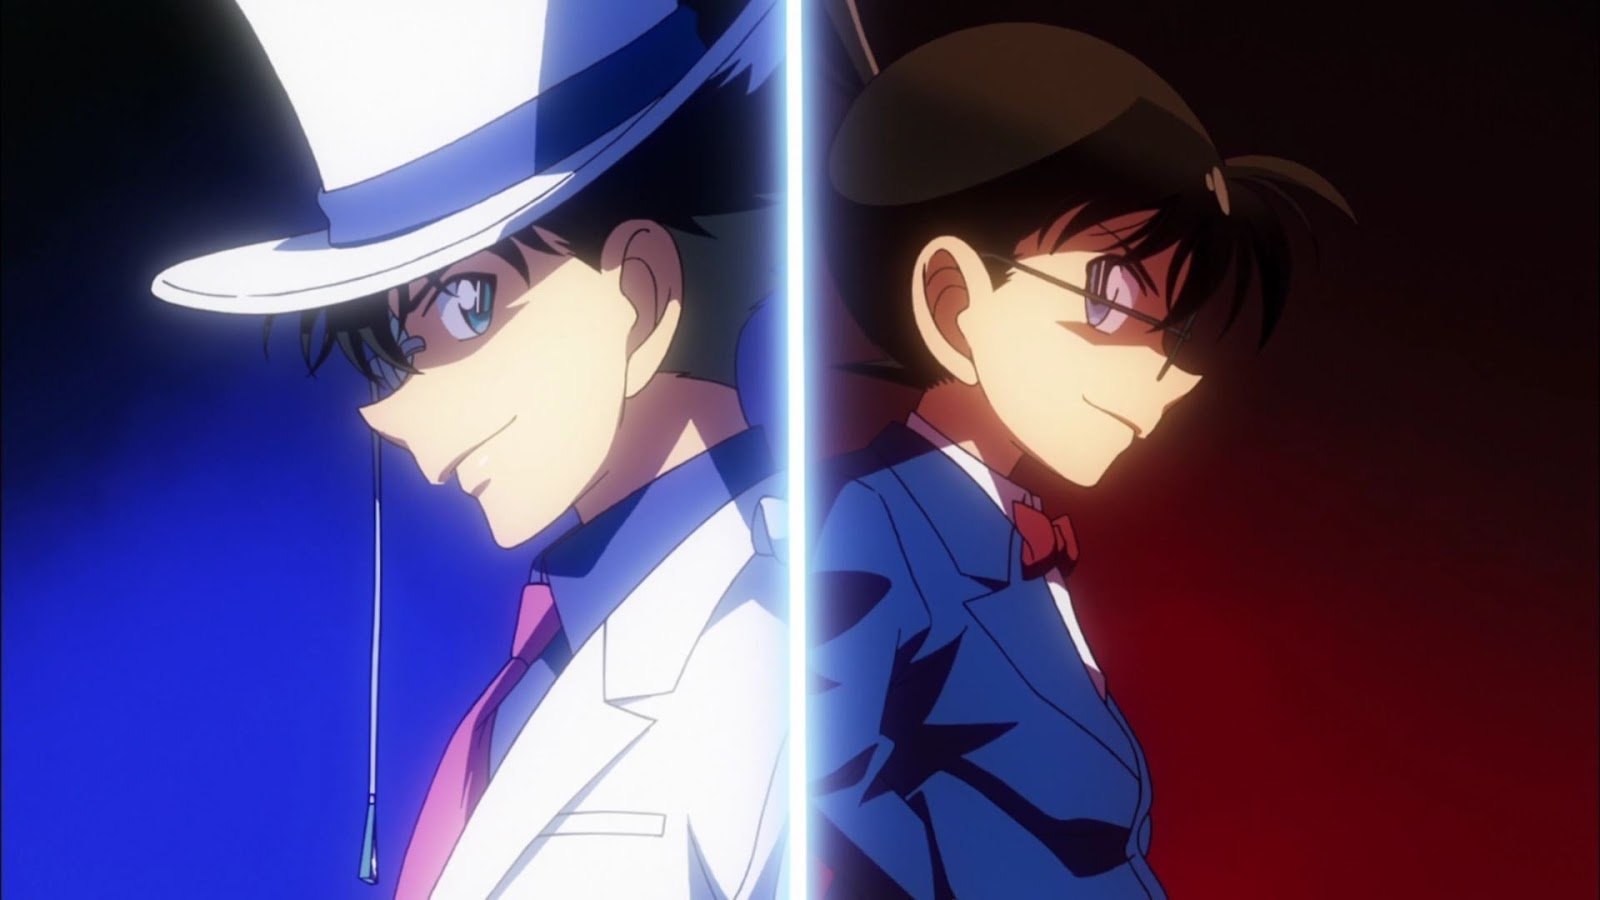 Download 93 Wallpaper Hp Detective Conan Gratis